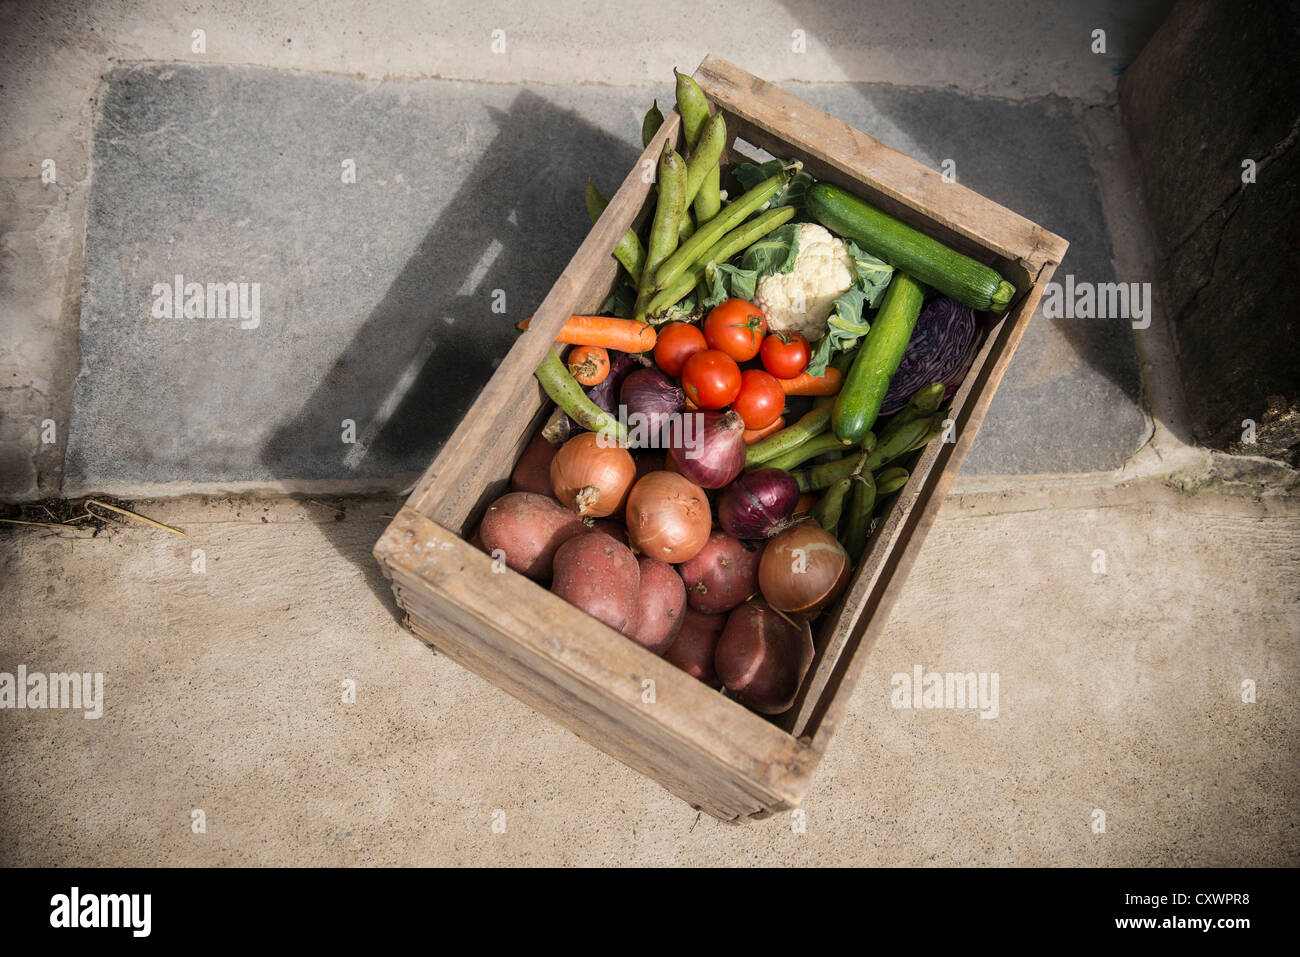 Wooden crate of vegetables - Stock Image